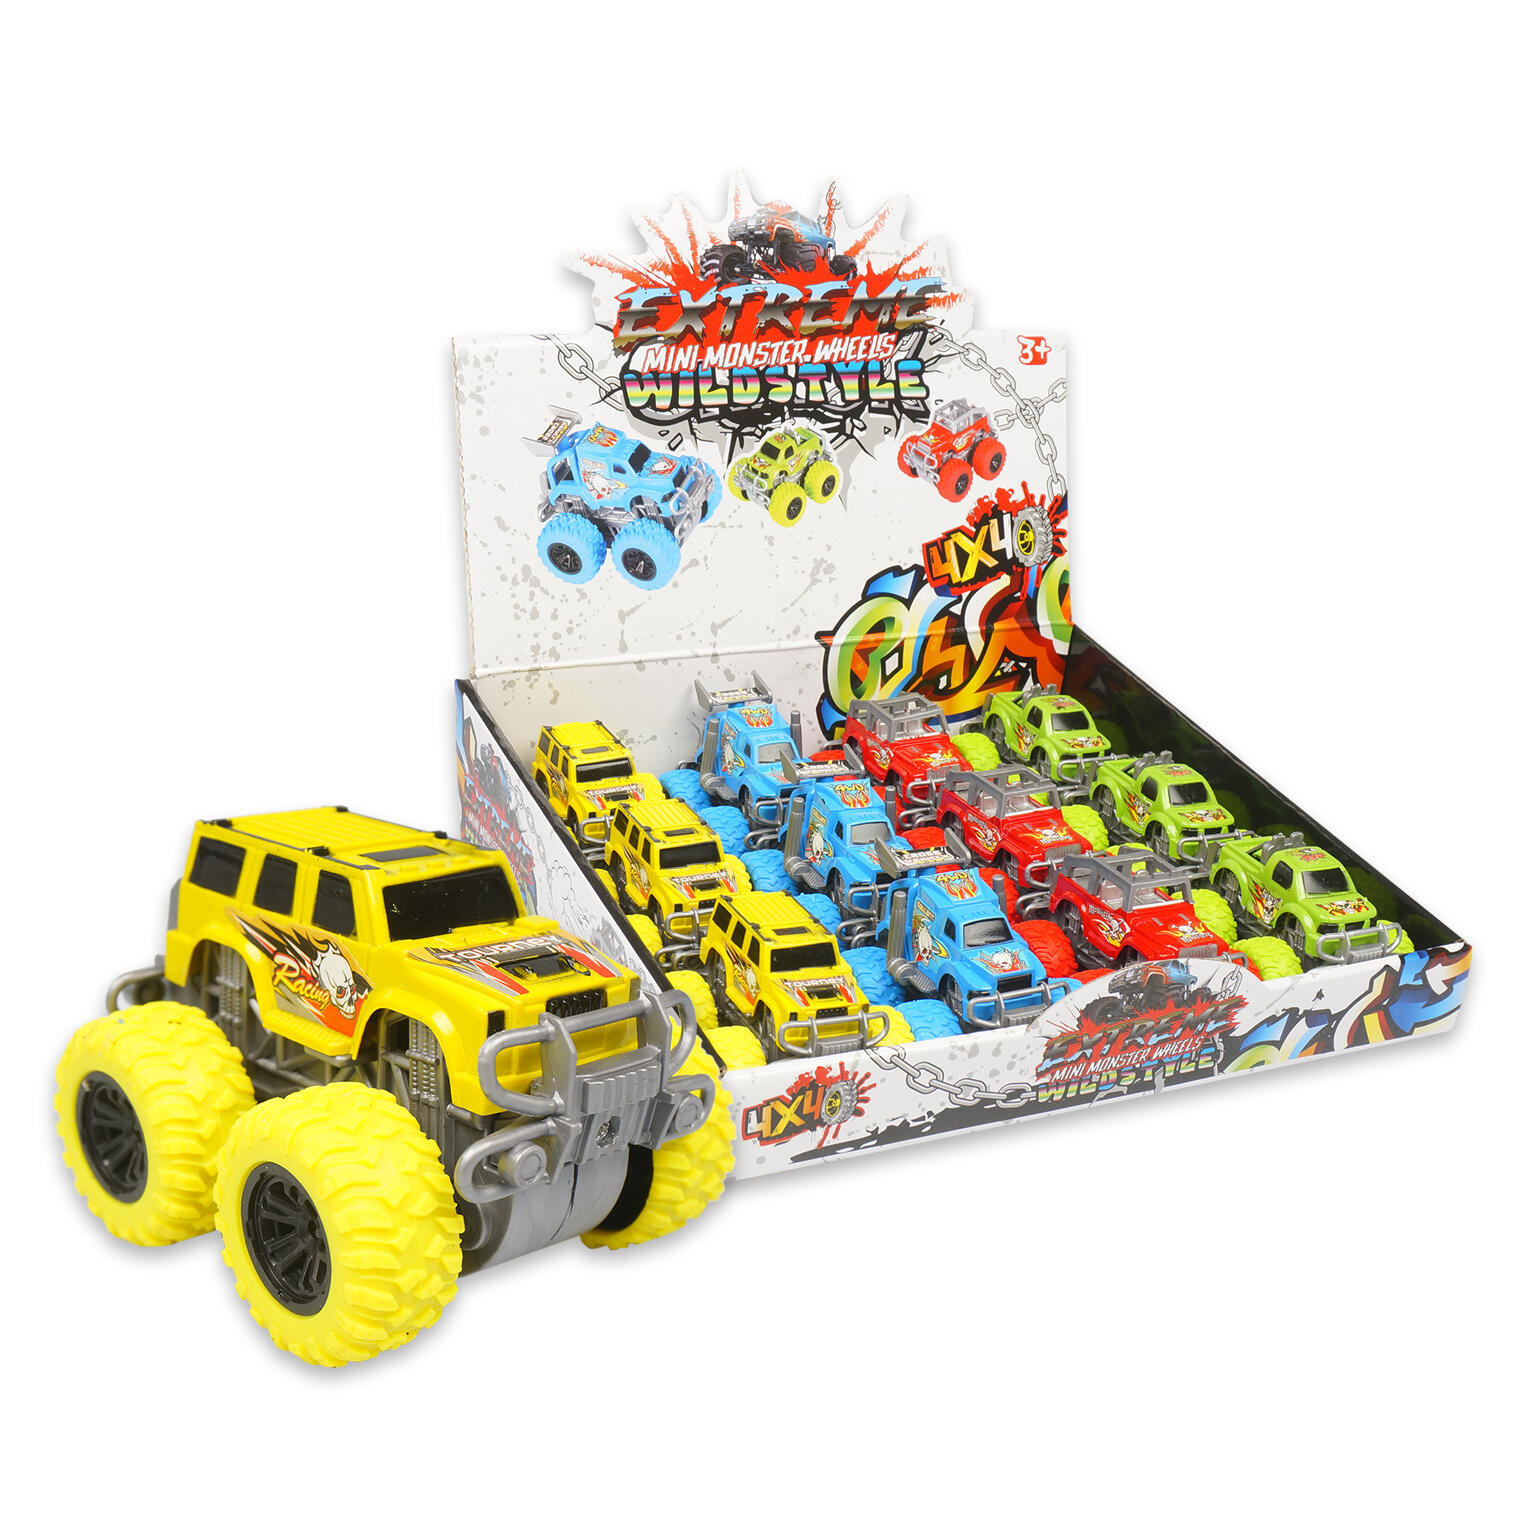 Wholesale Extreme Mini Monster Truck Toys Assorted Colors Sku 2349766 Dollardays